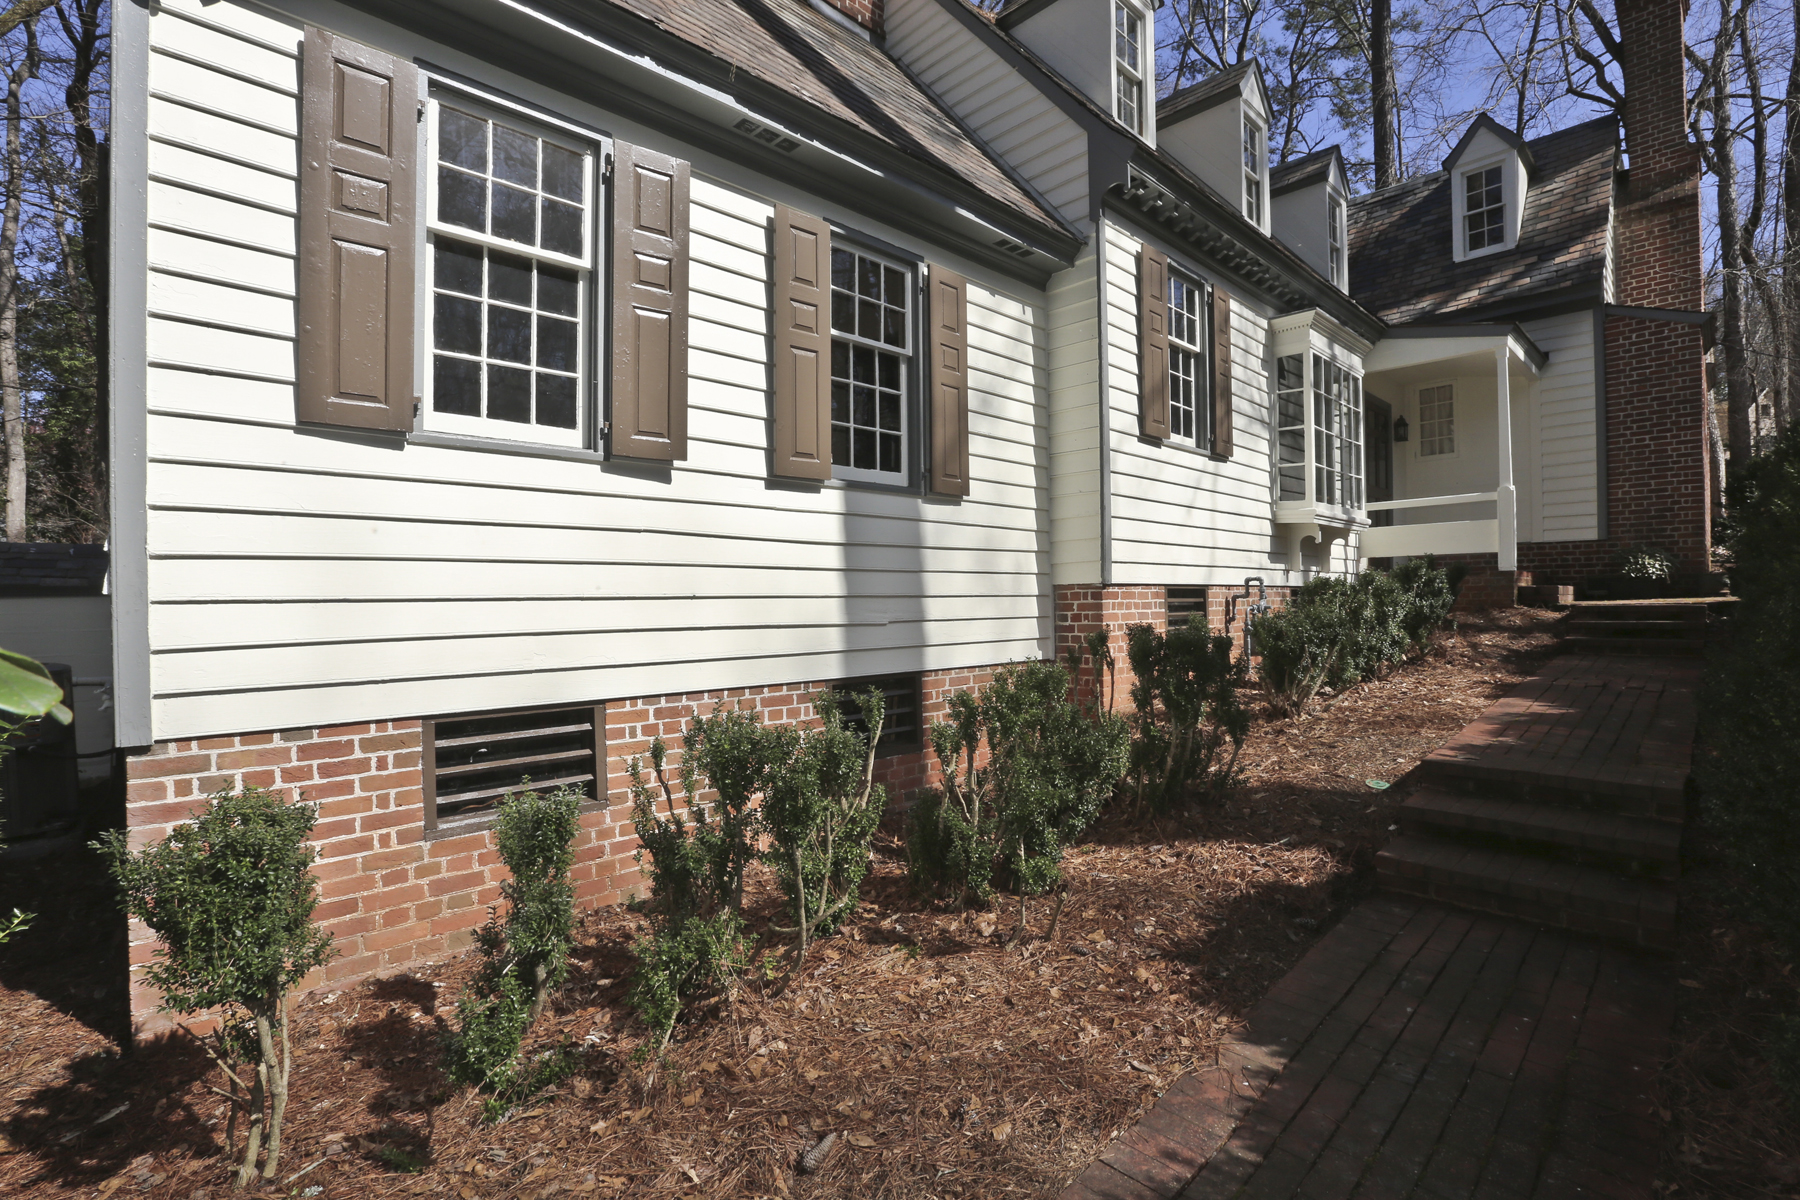 独户住宅 为 销售 在 Charming Williamsburg Home On 1.2 Acre Lot 1215 E Beechwood Drive Buckhead, 亚特兰大, 乔治亚州, 30327 美国